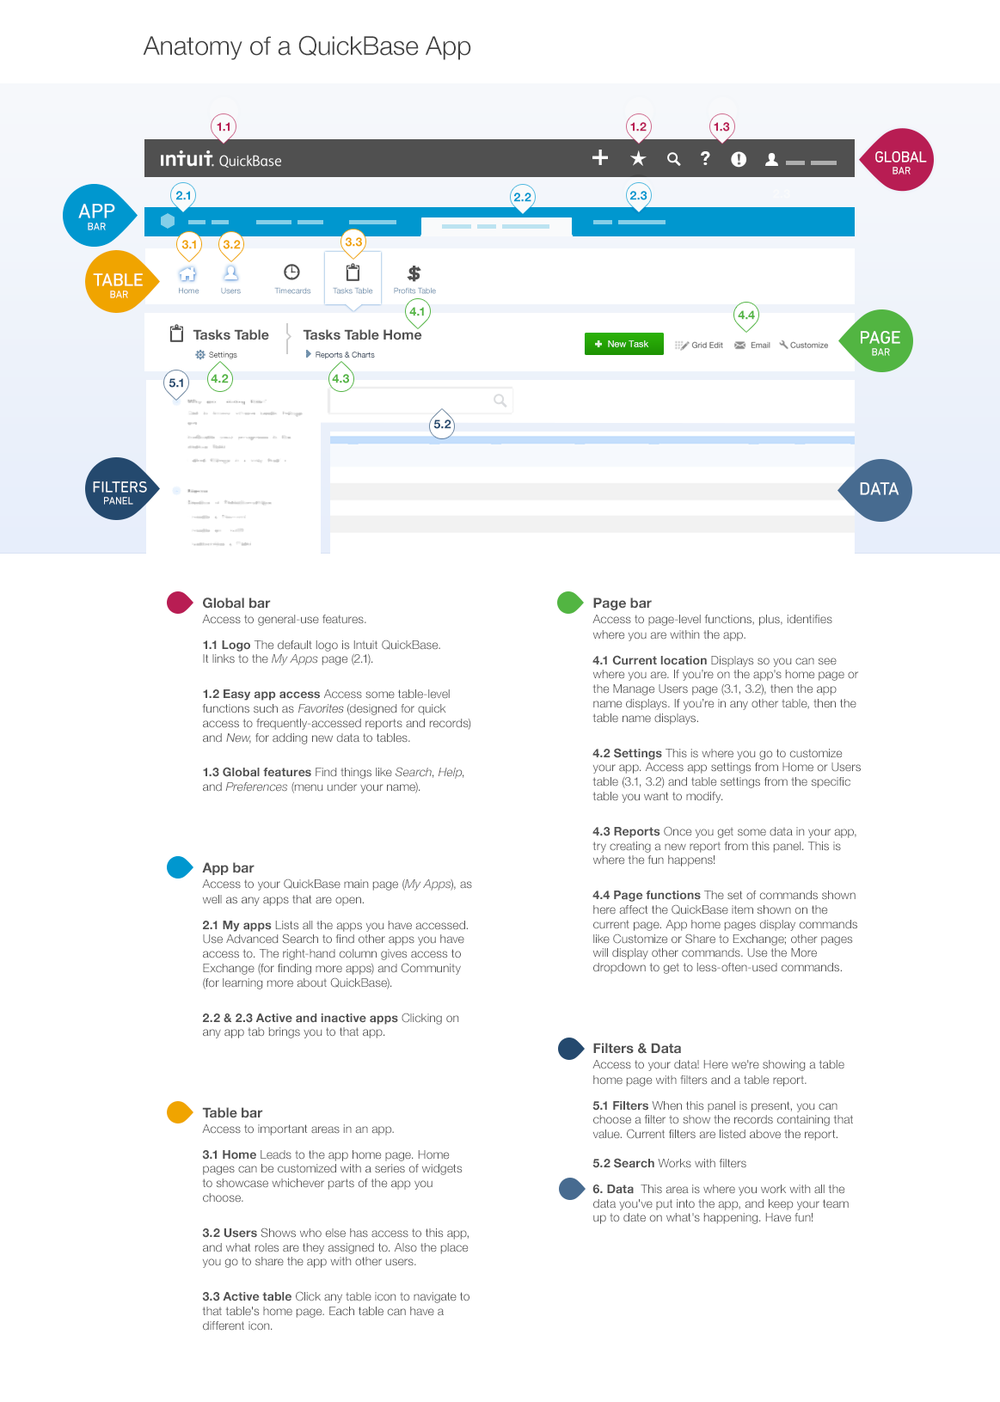 Our product had no broad-overview. I designed this one-pager to help our customers understand documentation more easily. Sometimes people just need orientation, not lessons.